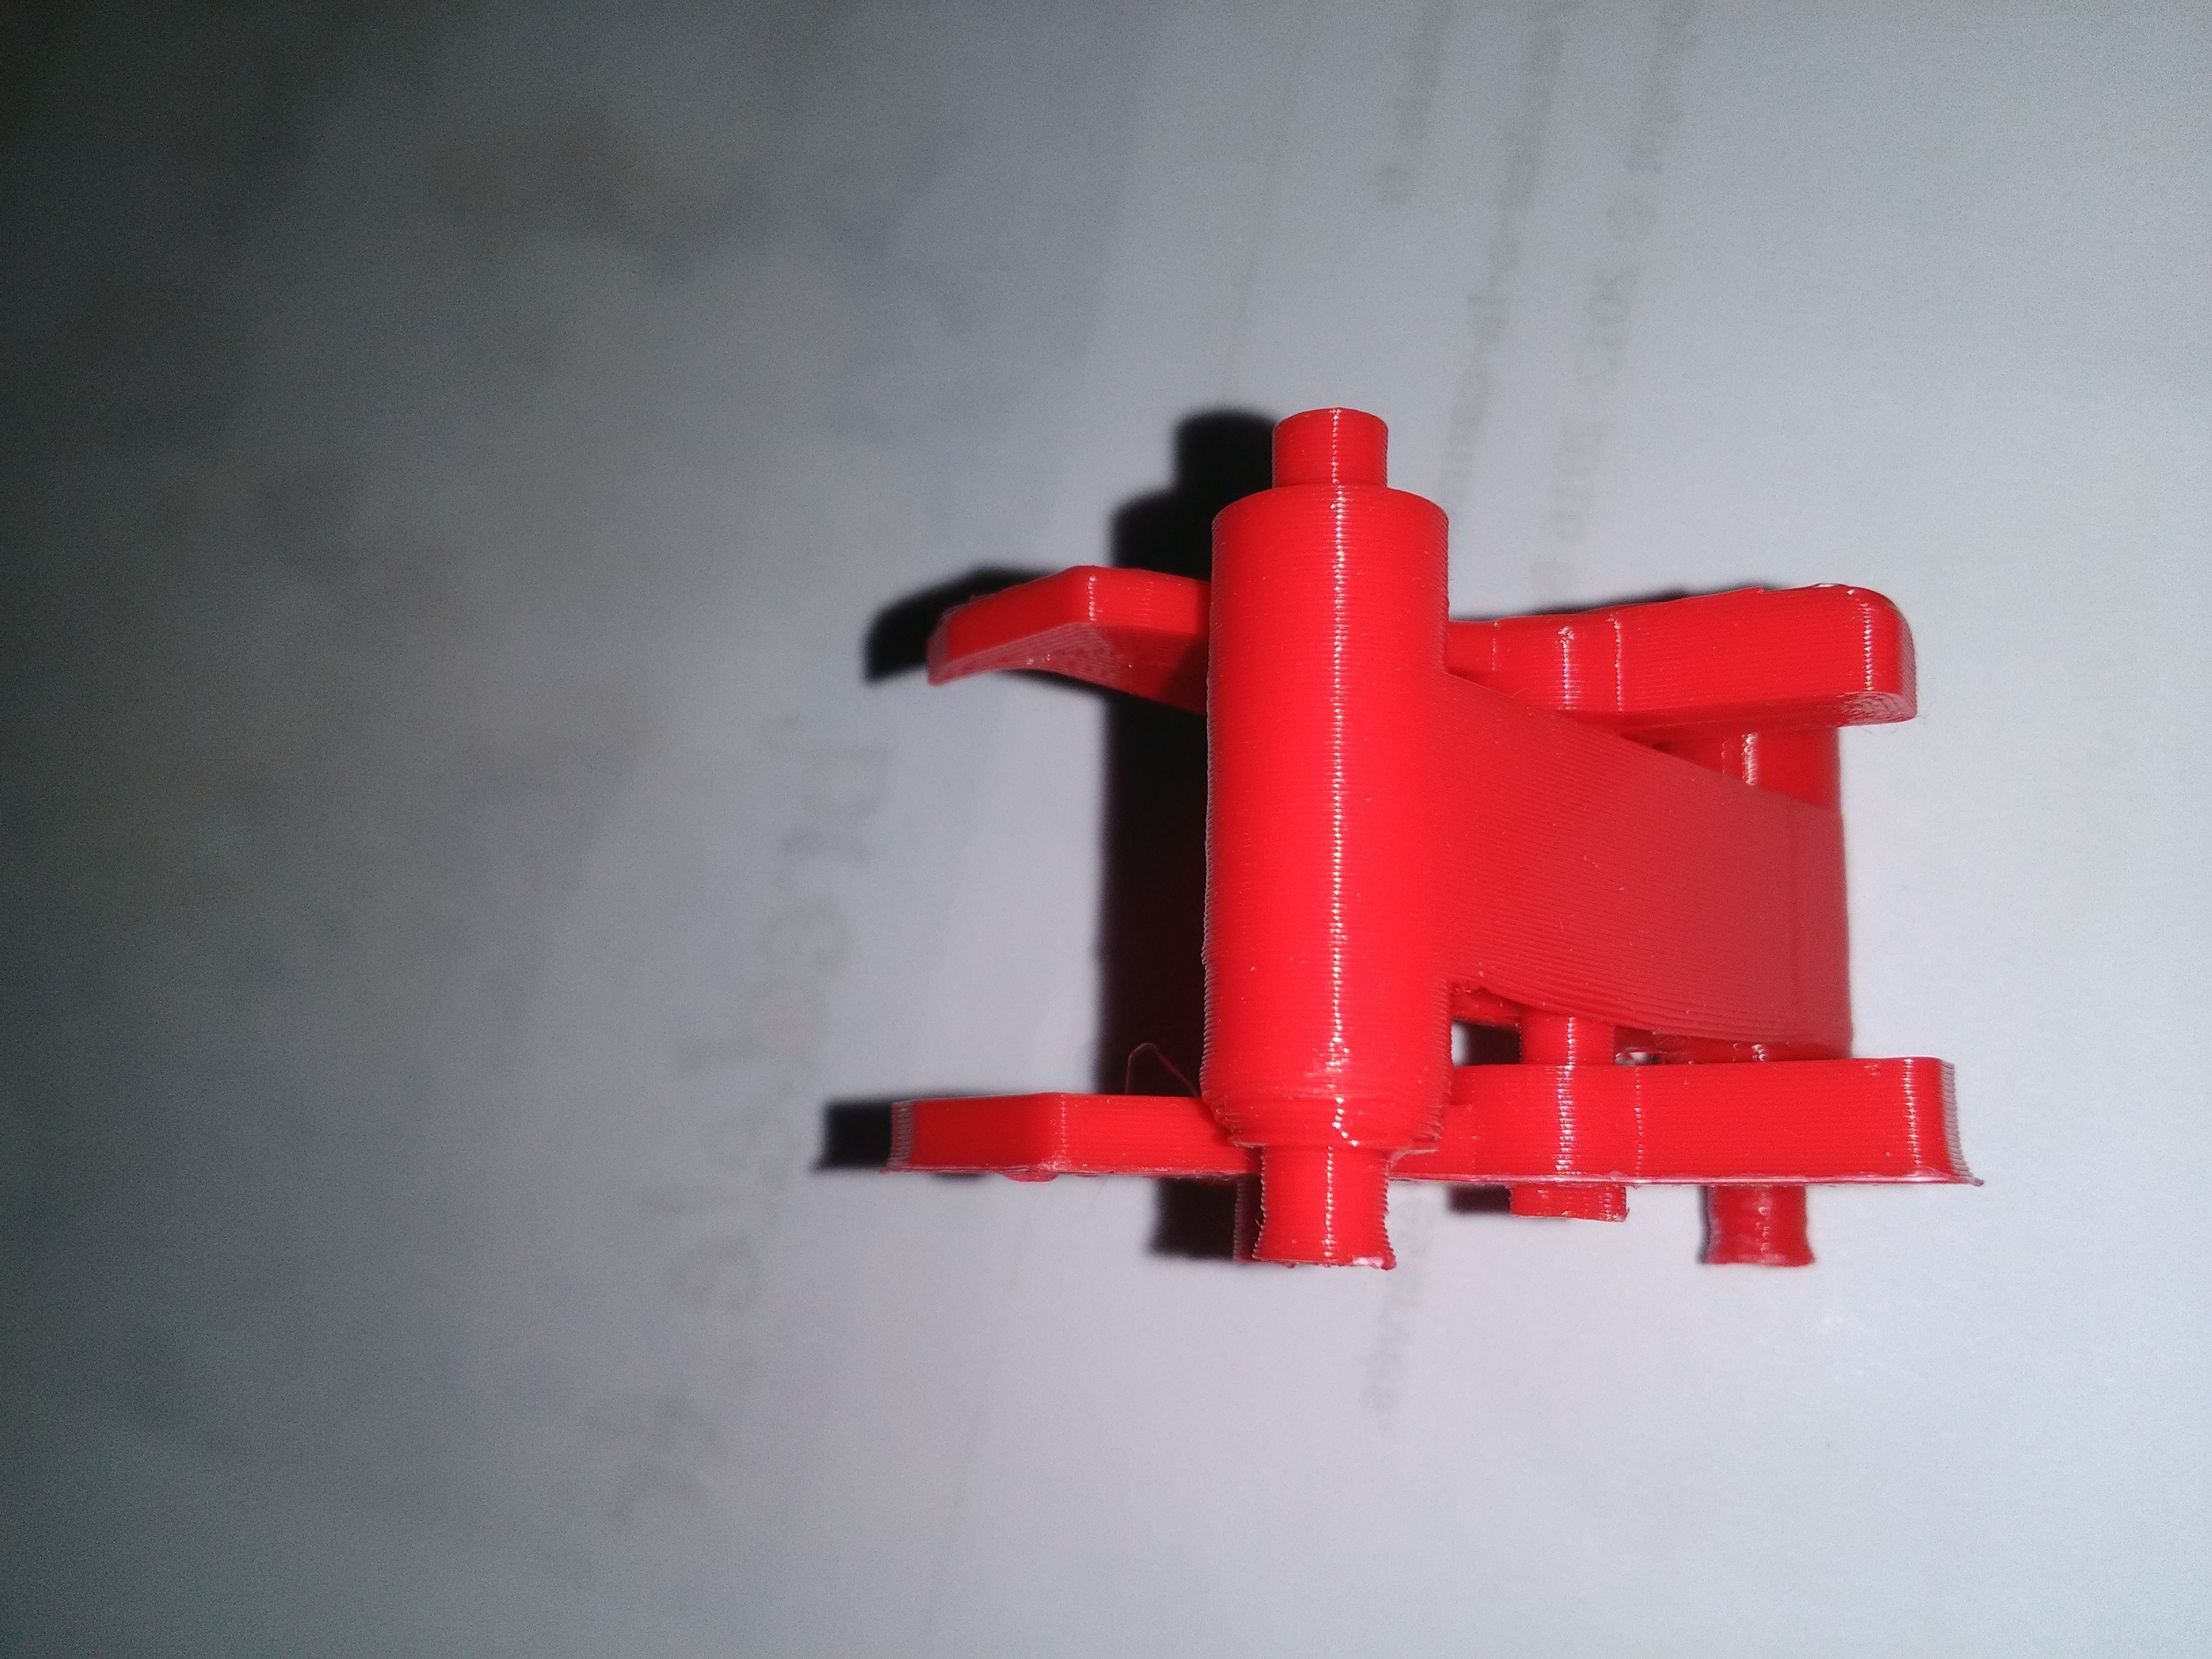 IMG_20180119_145420.jpg Download free STL file Manual winch • 3D print object, mk25